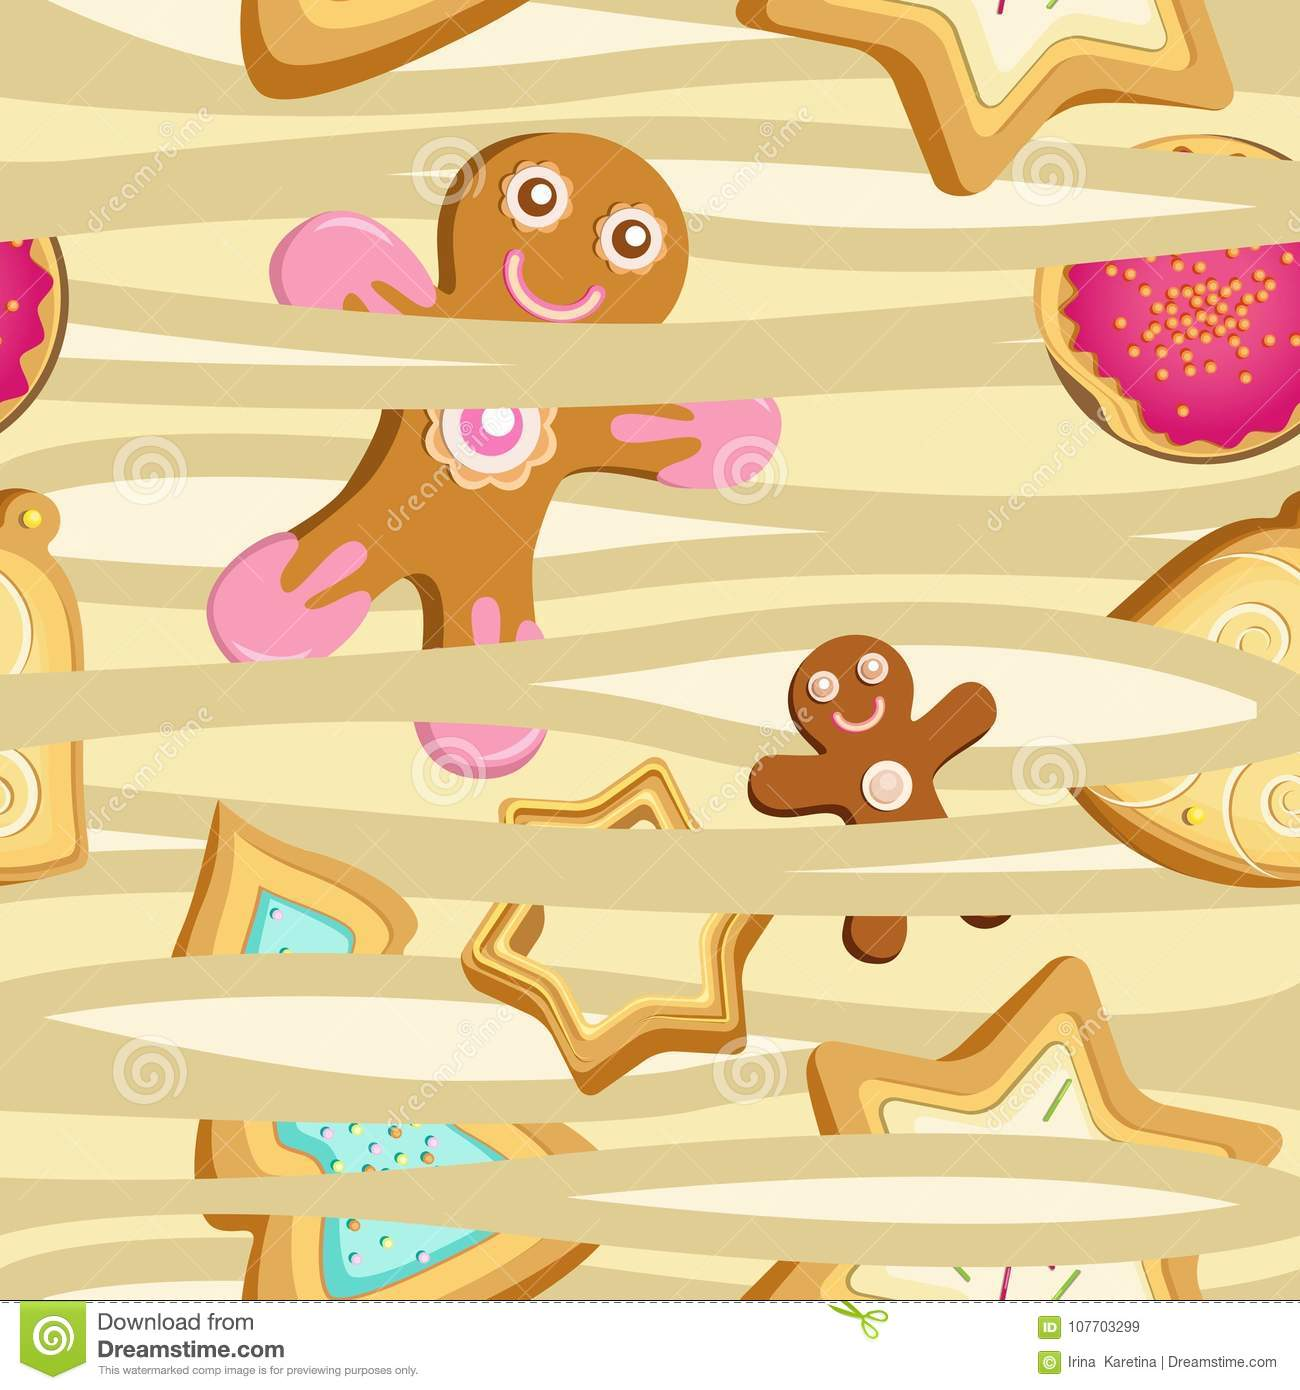 Vector seamless pattern of cookies in the form of Christmas trees, stars and gingerbread men.